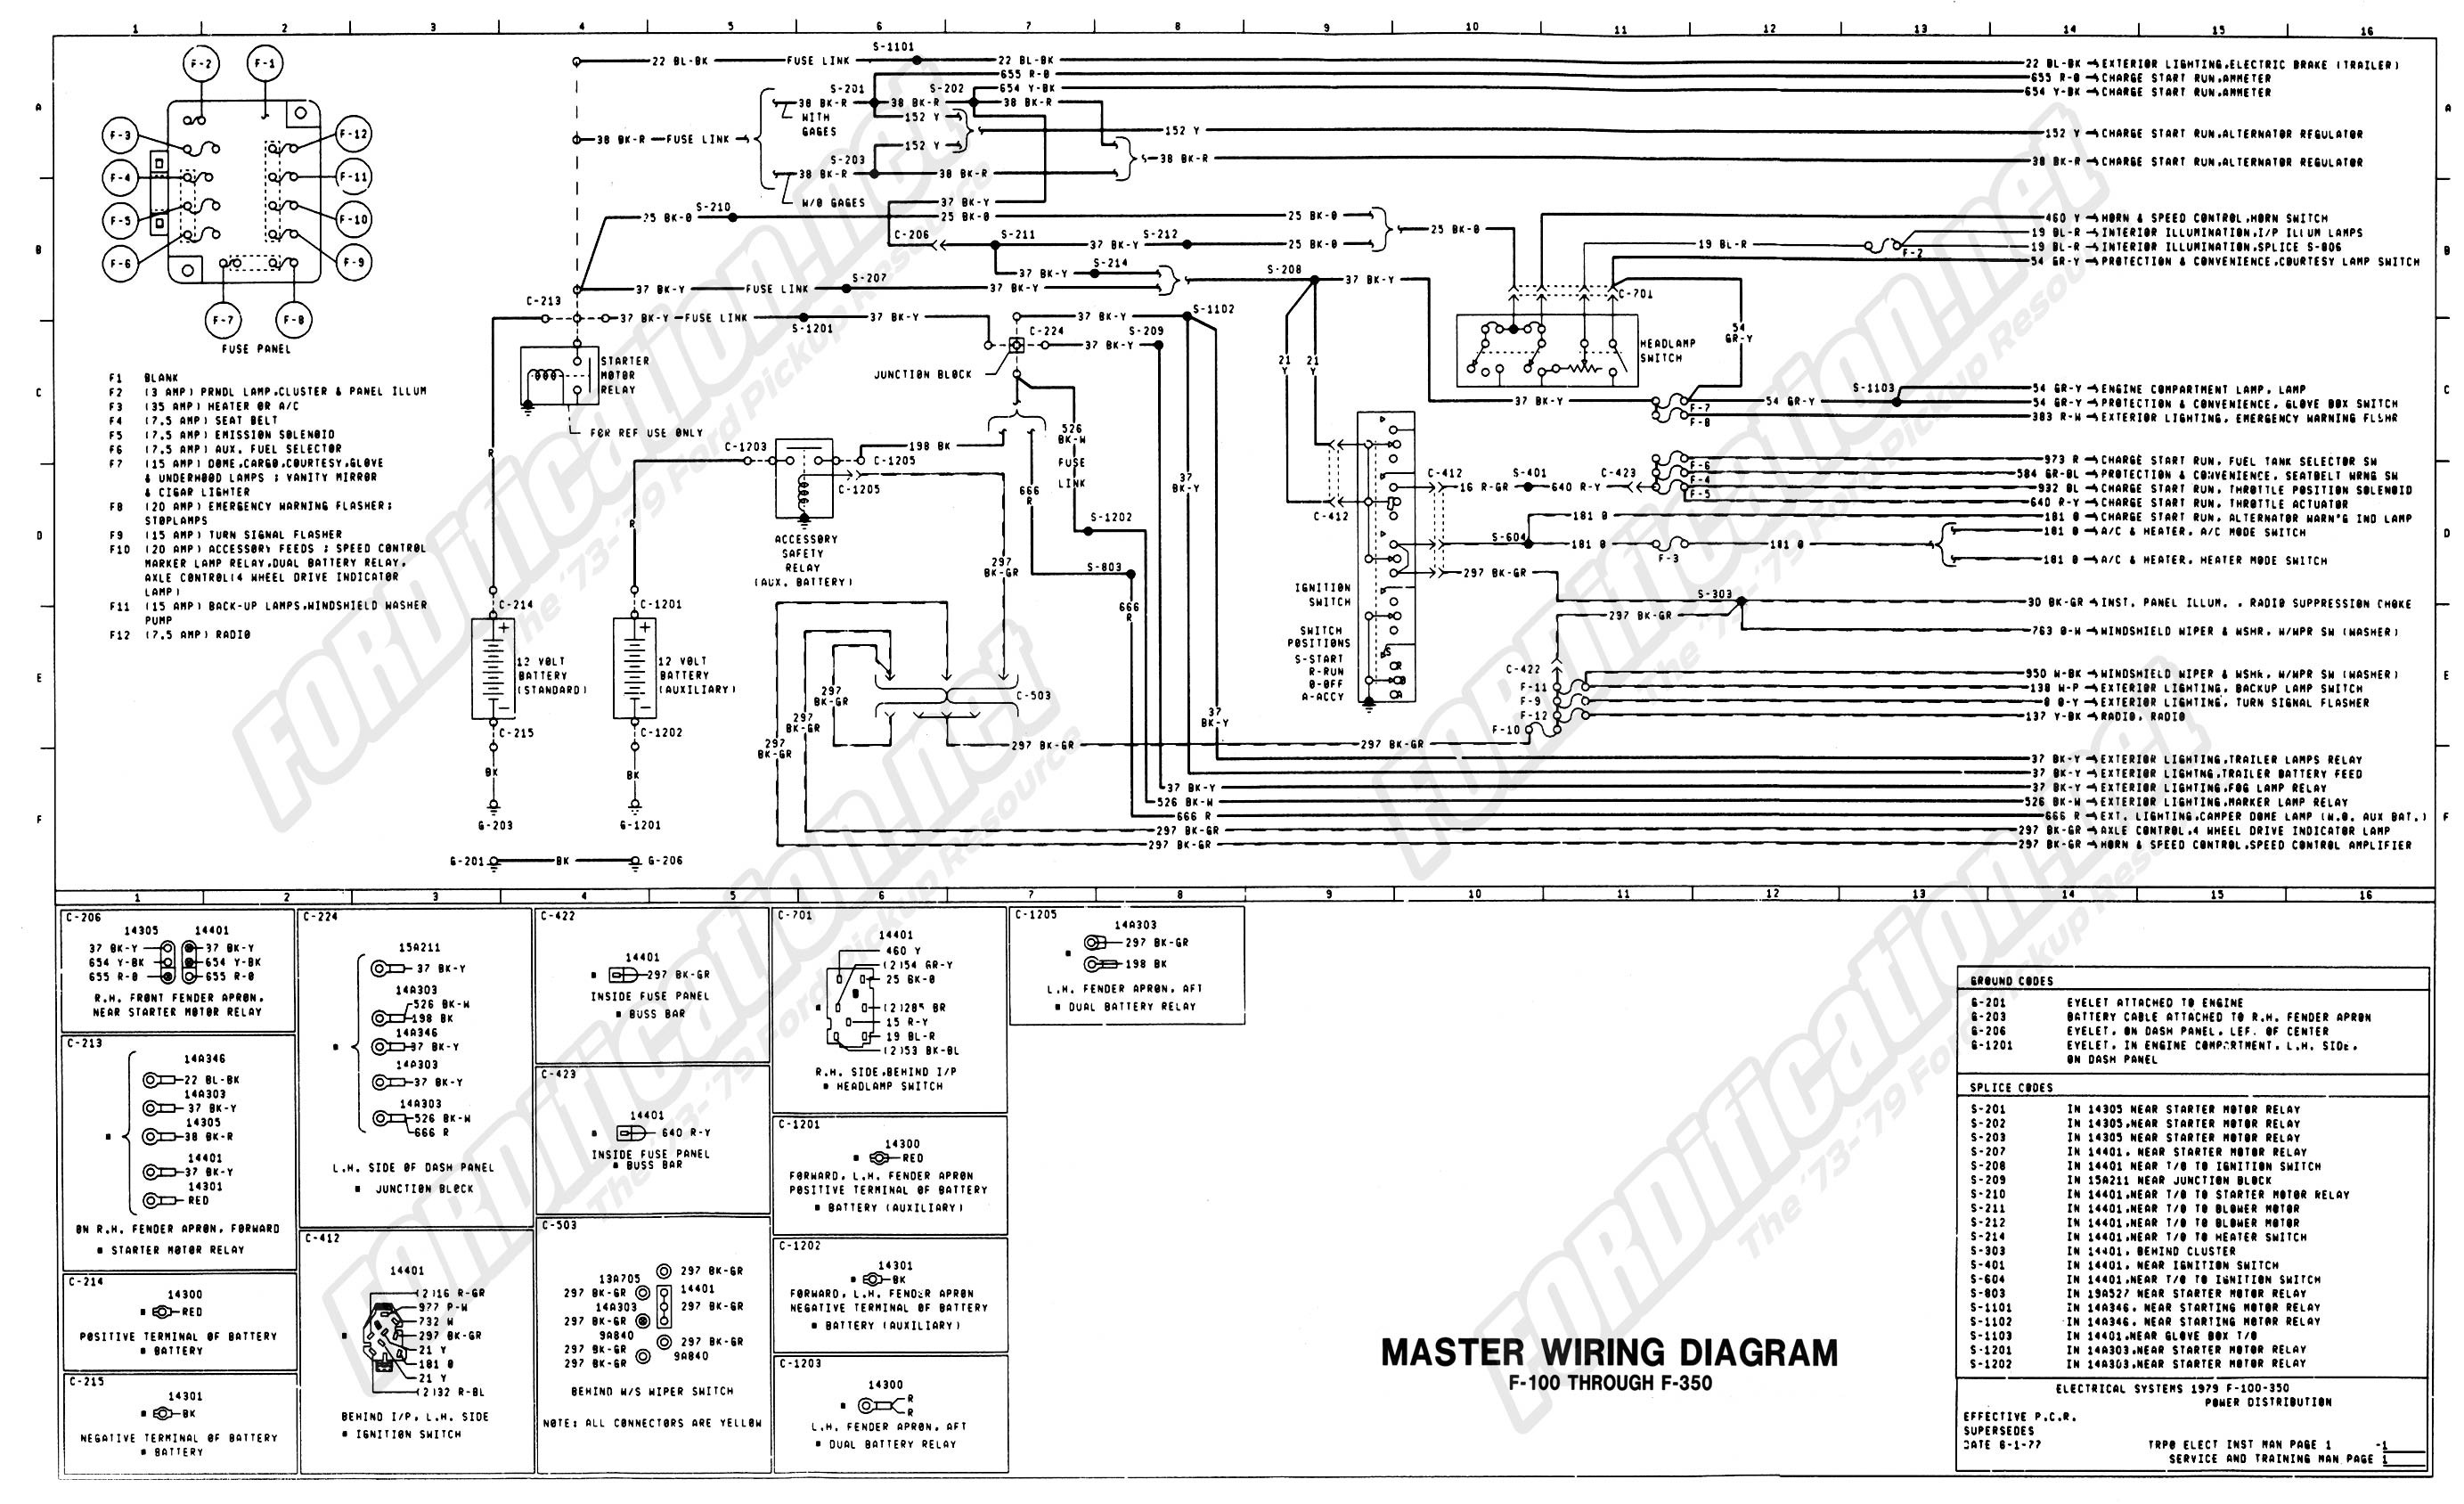 Diesel Engine Starter Wiring Diagram My 79 F150 Solenoid Ford Truck Enthusiasts Forums Of